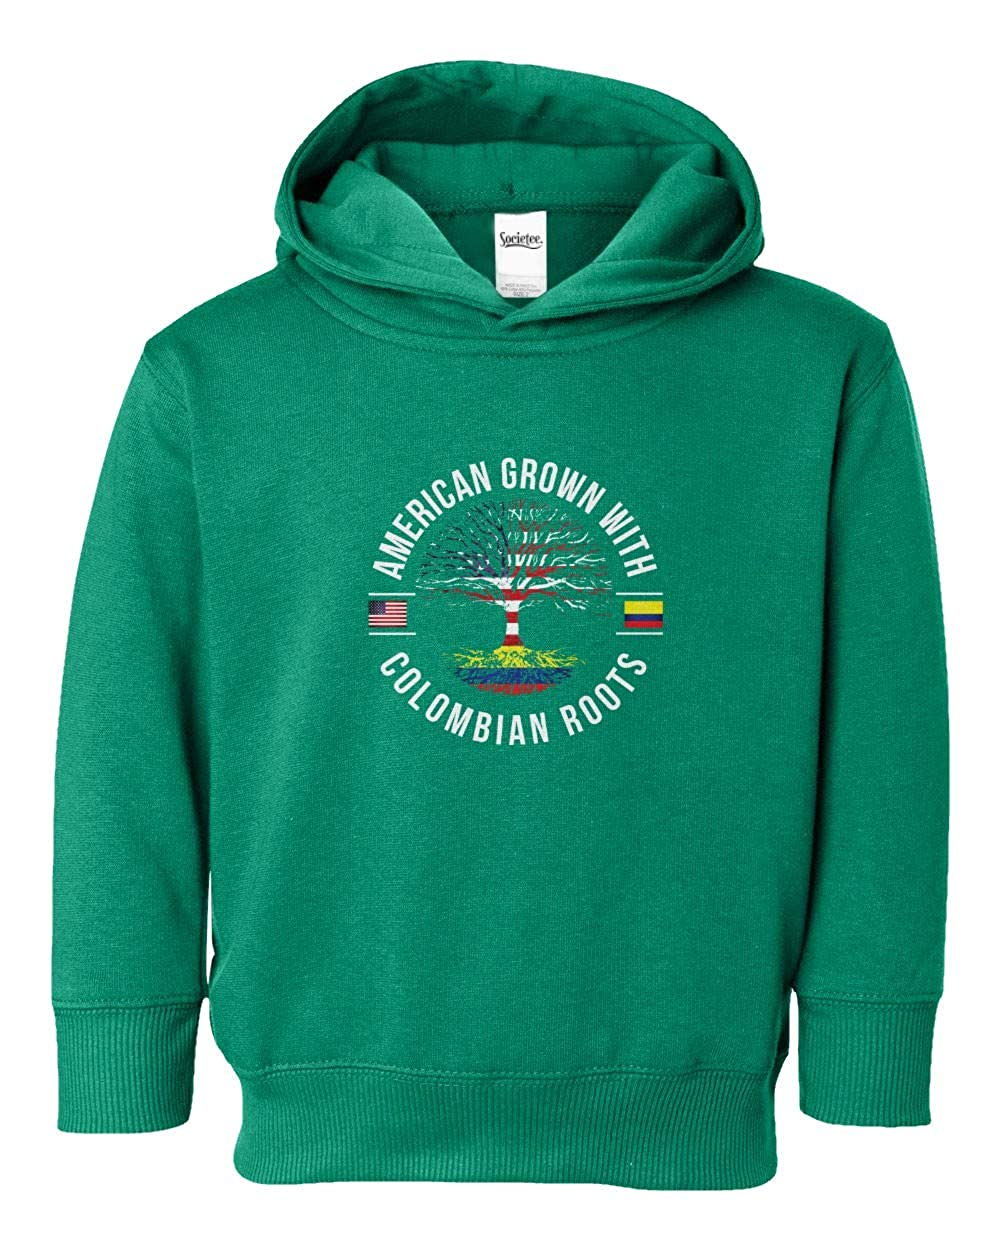 Societee American Grown with Colombian Roots Youth /& Toddler Hoodie Sweatshirt